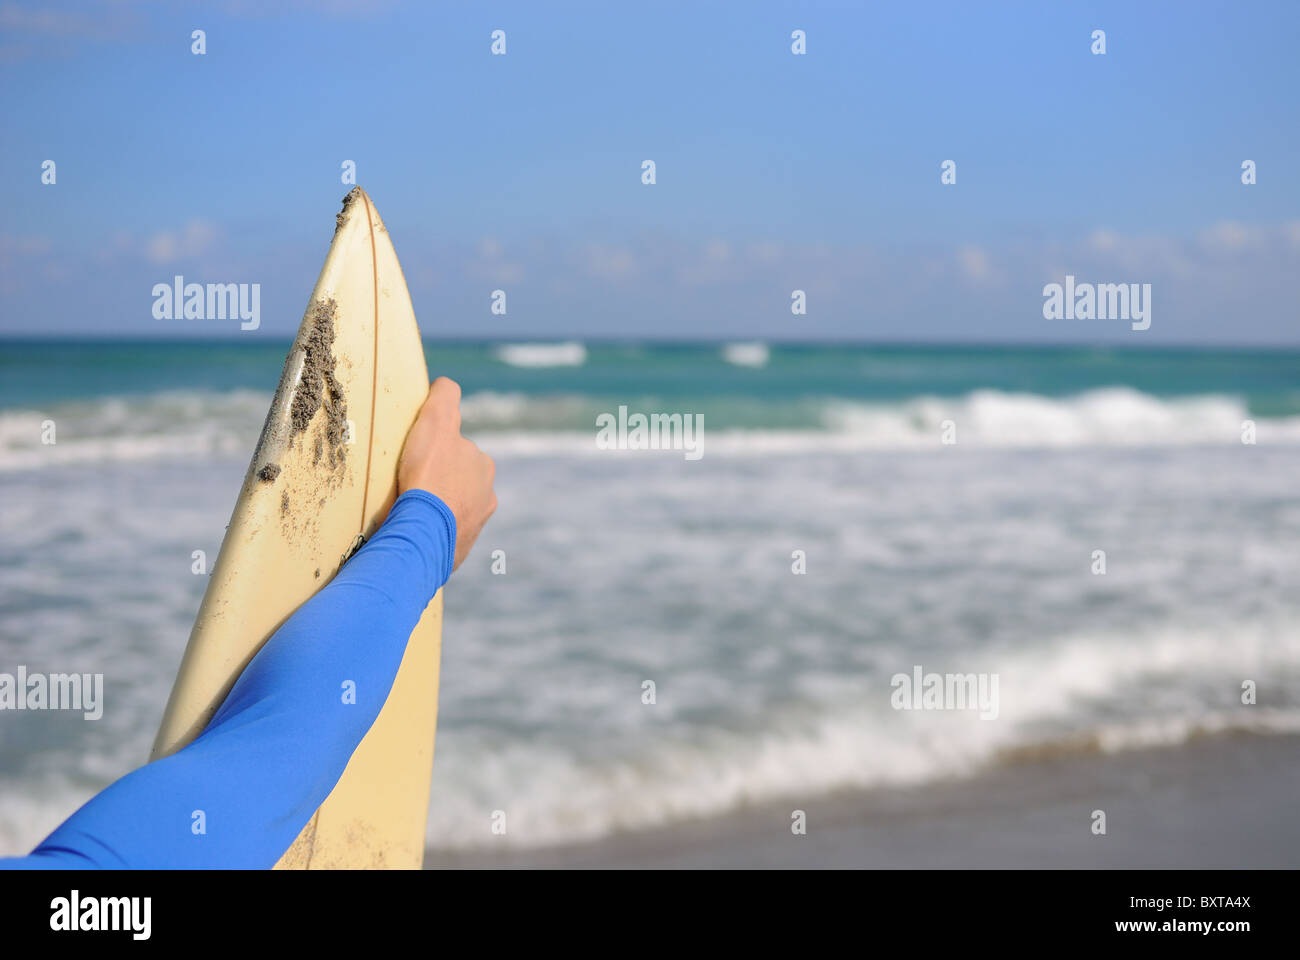 Surfer holding his board - Stock Image